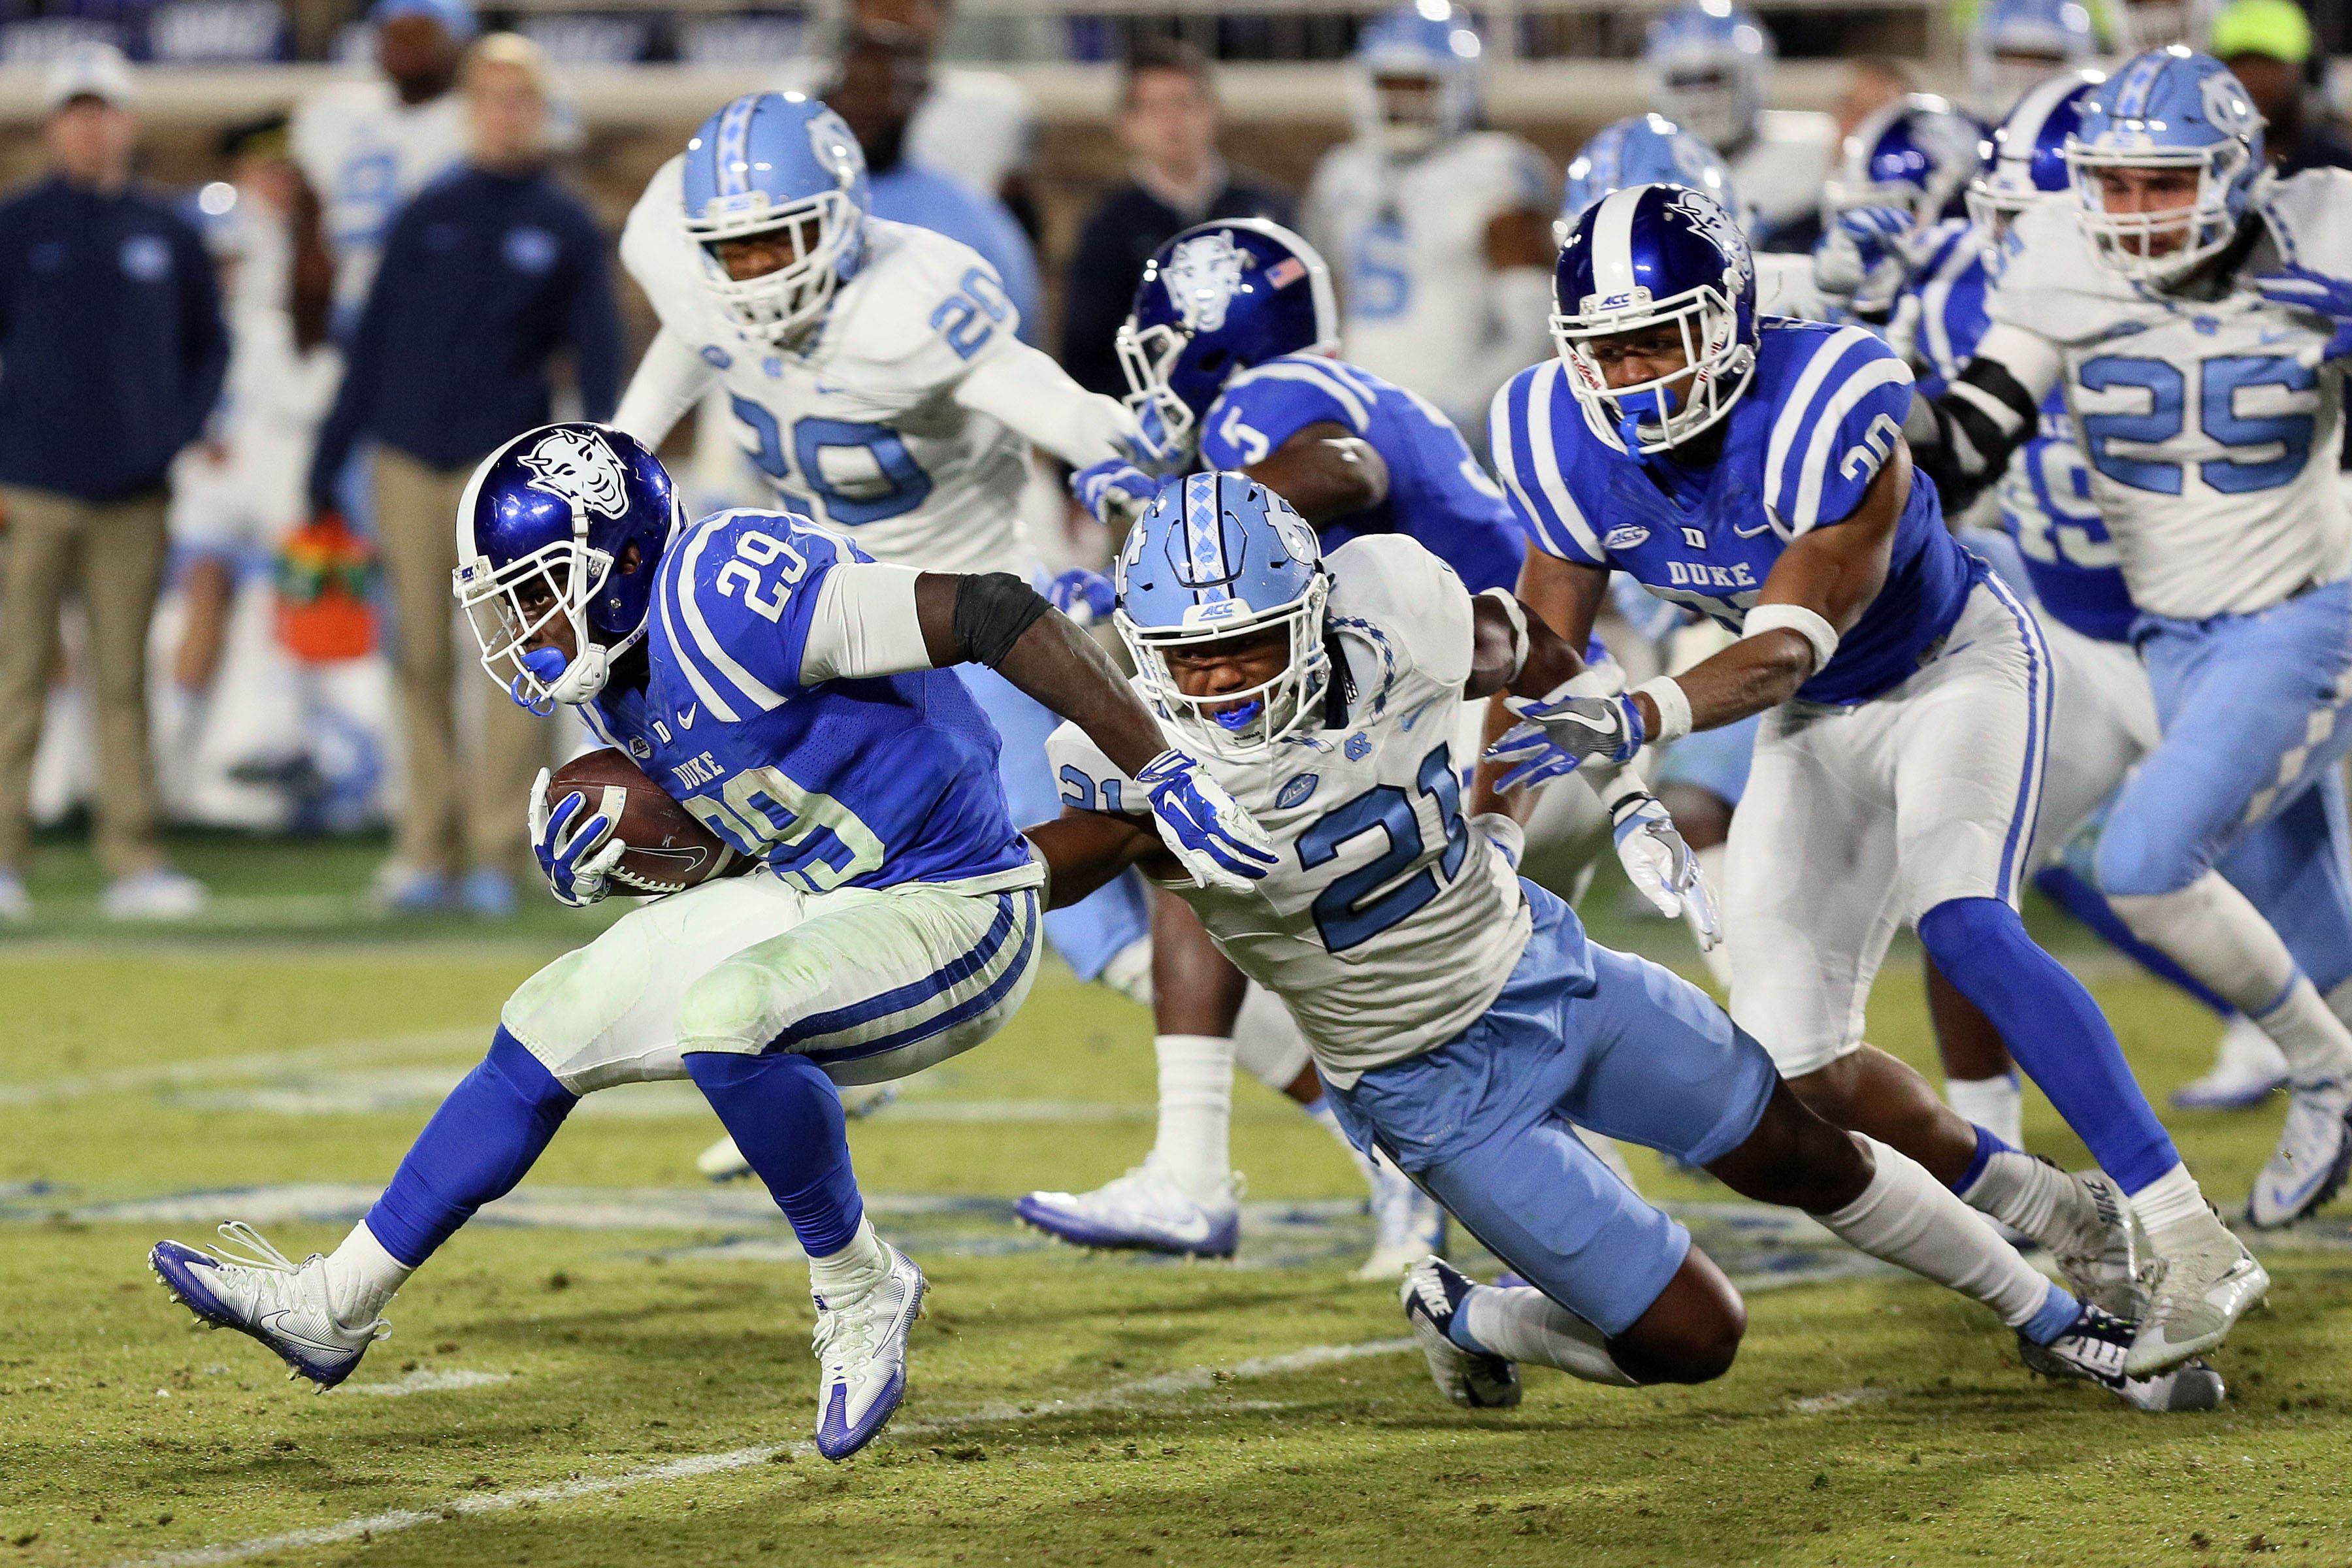 Top UNC Football players for 2017: No. 18 Myles DornNorth Carolina Football Schedule